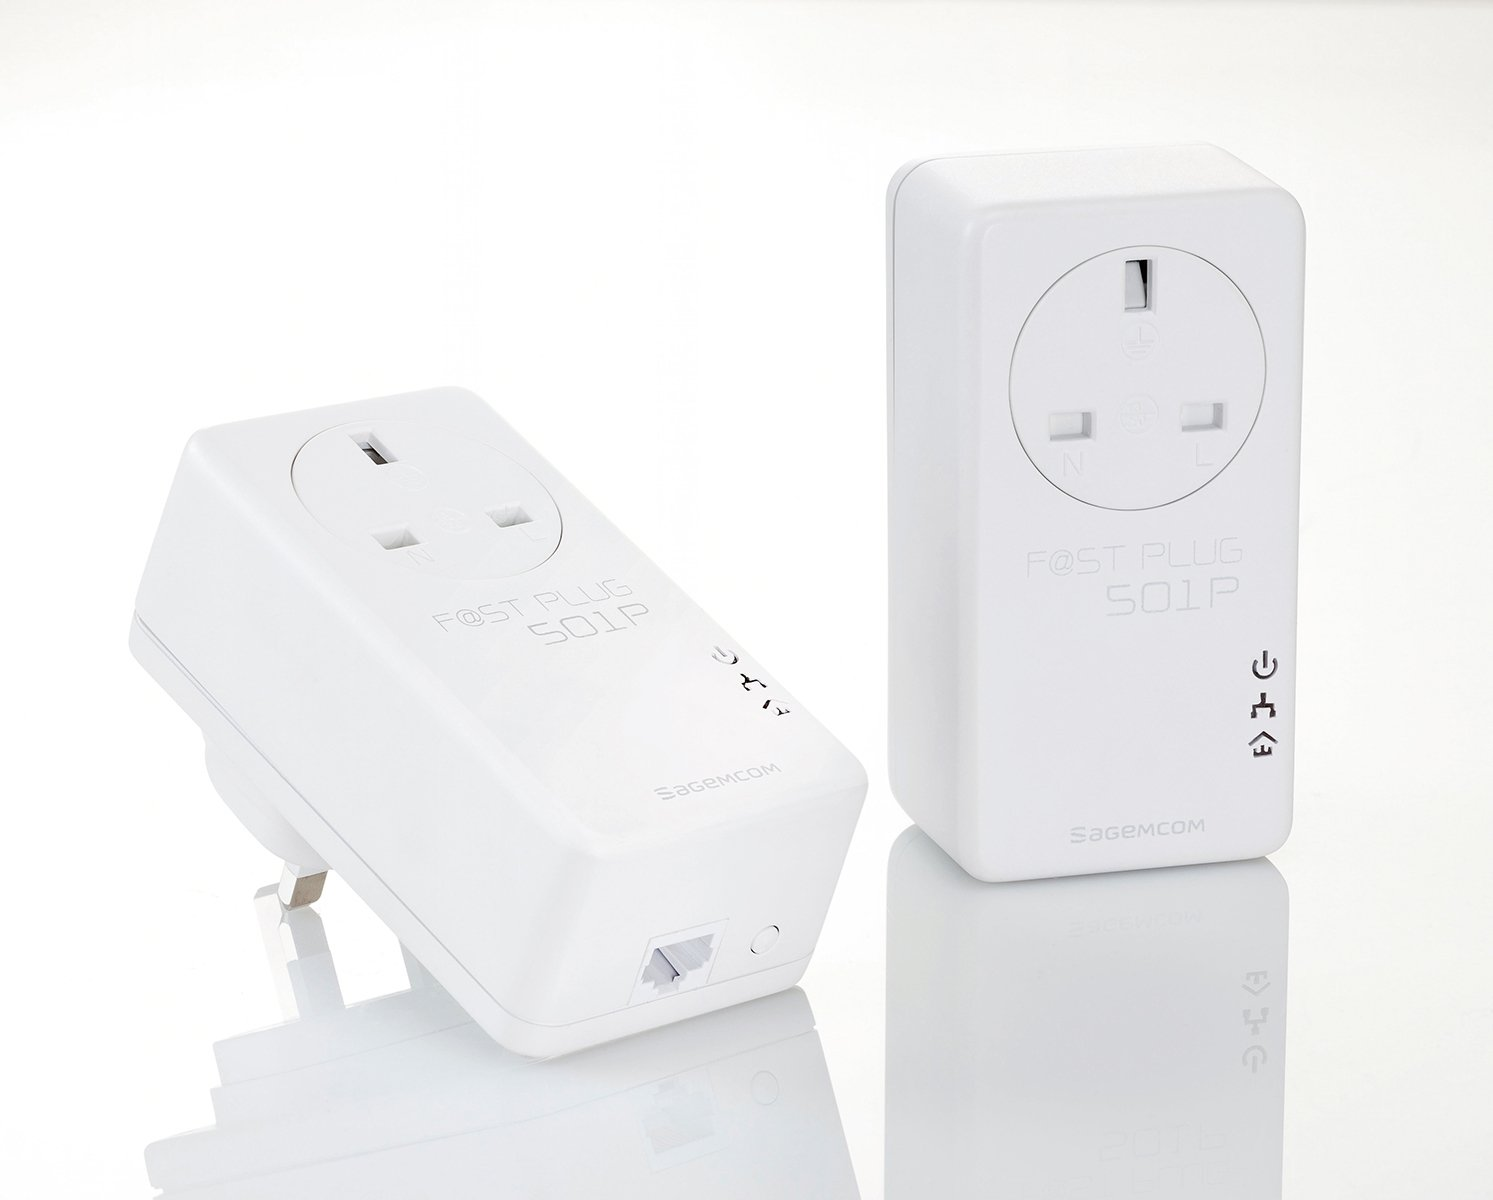 Sagemcom Fastplug 501p 1-Port Powerline Duo w/ Pass-Through.